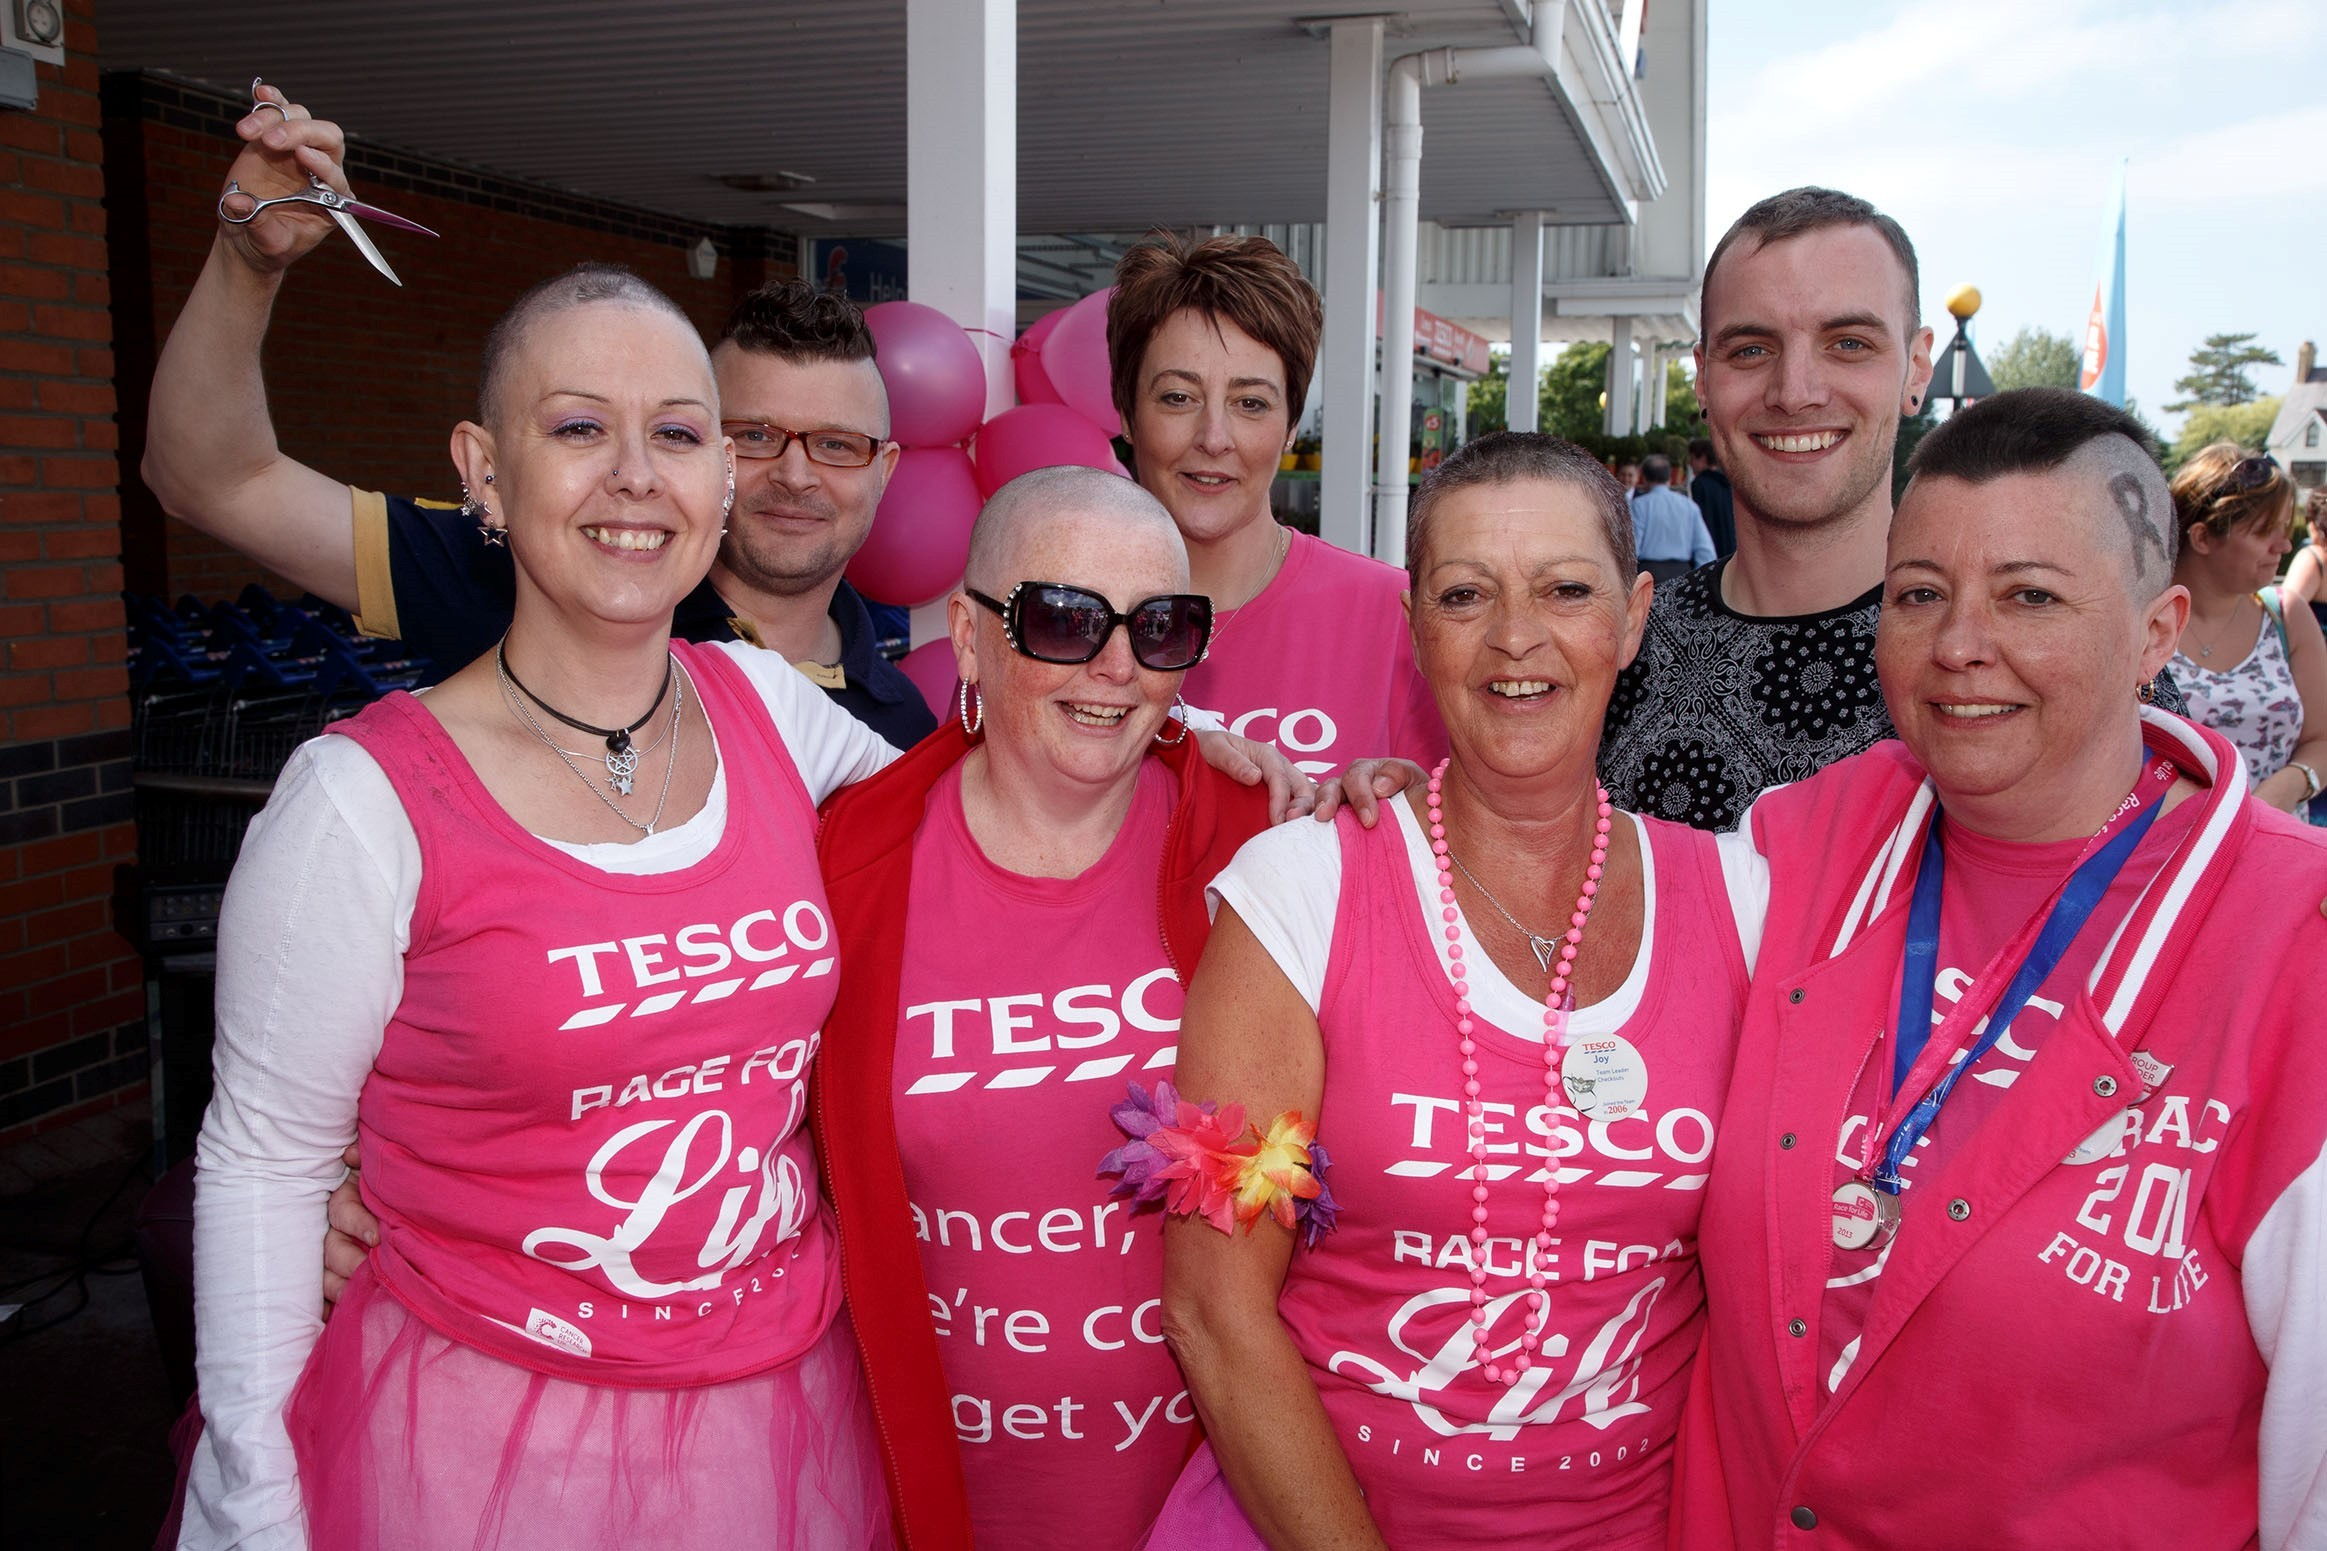 Tesco Ladies had their head shaved by Jay Bura and Jamie Castle of oojuf